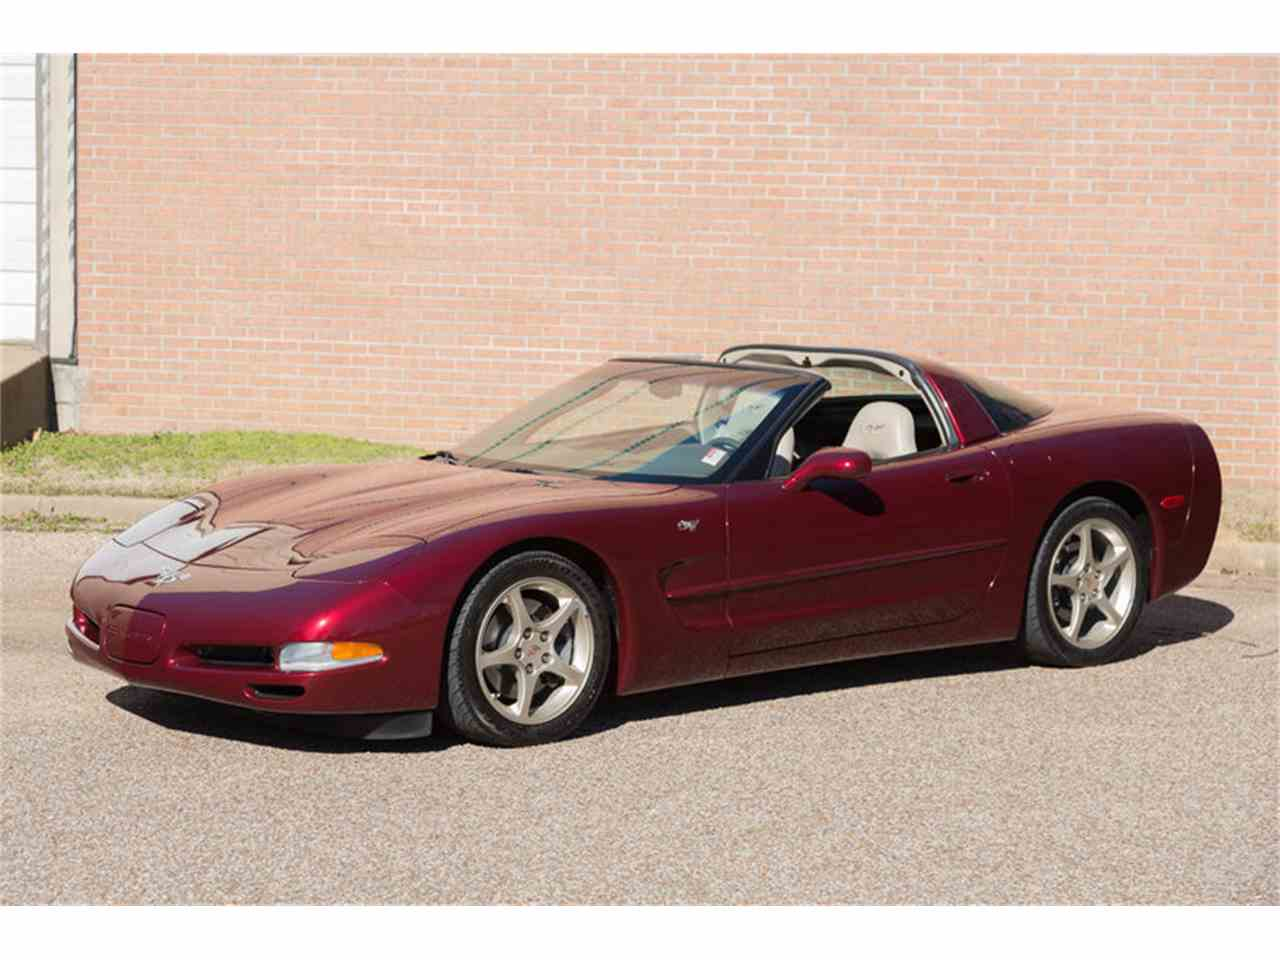 Large Picture of '03 Chevrolet Corvette - $25,900.00 - LTSQ